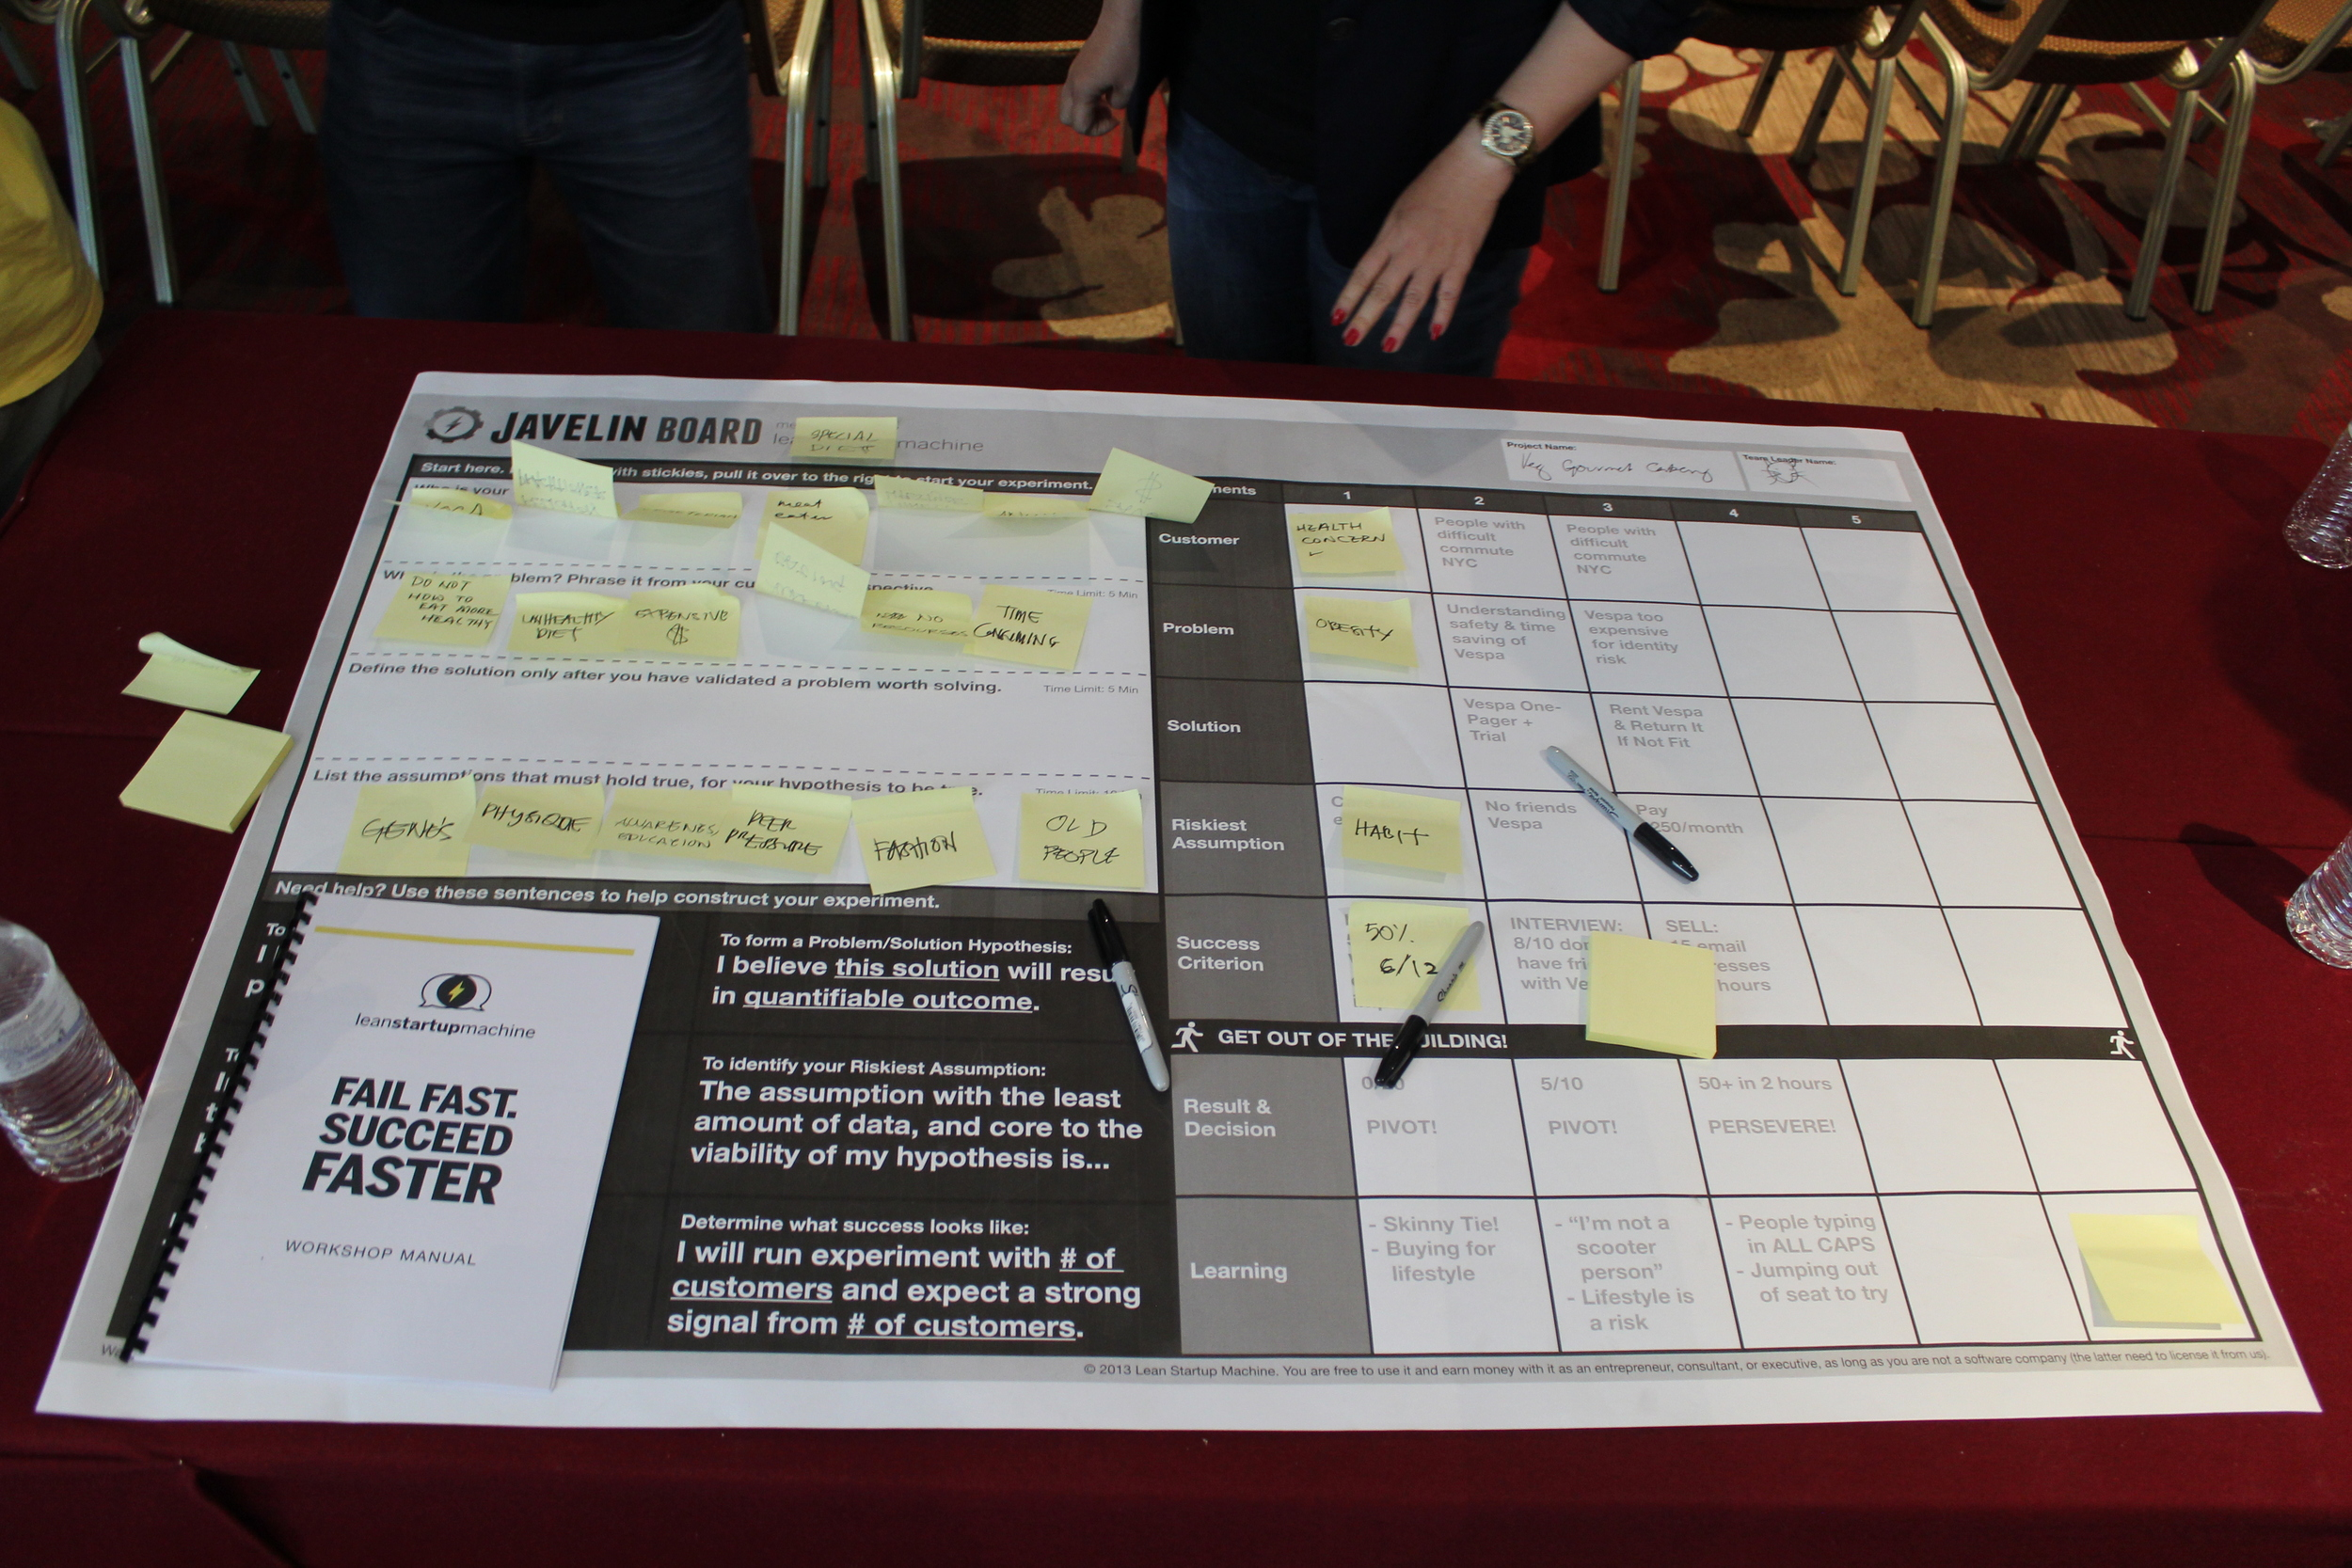 Each team is given a Javelin Board to conduct customer validation experiments